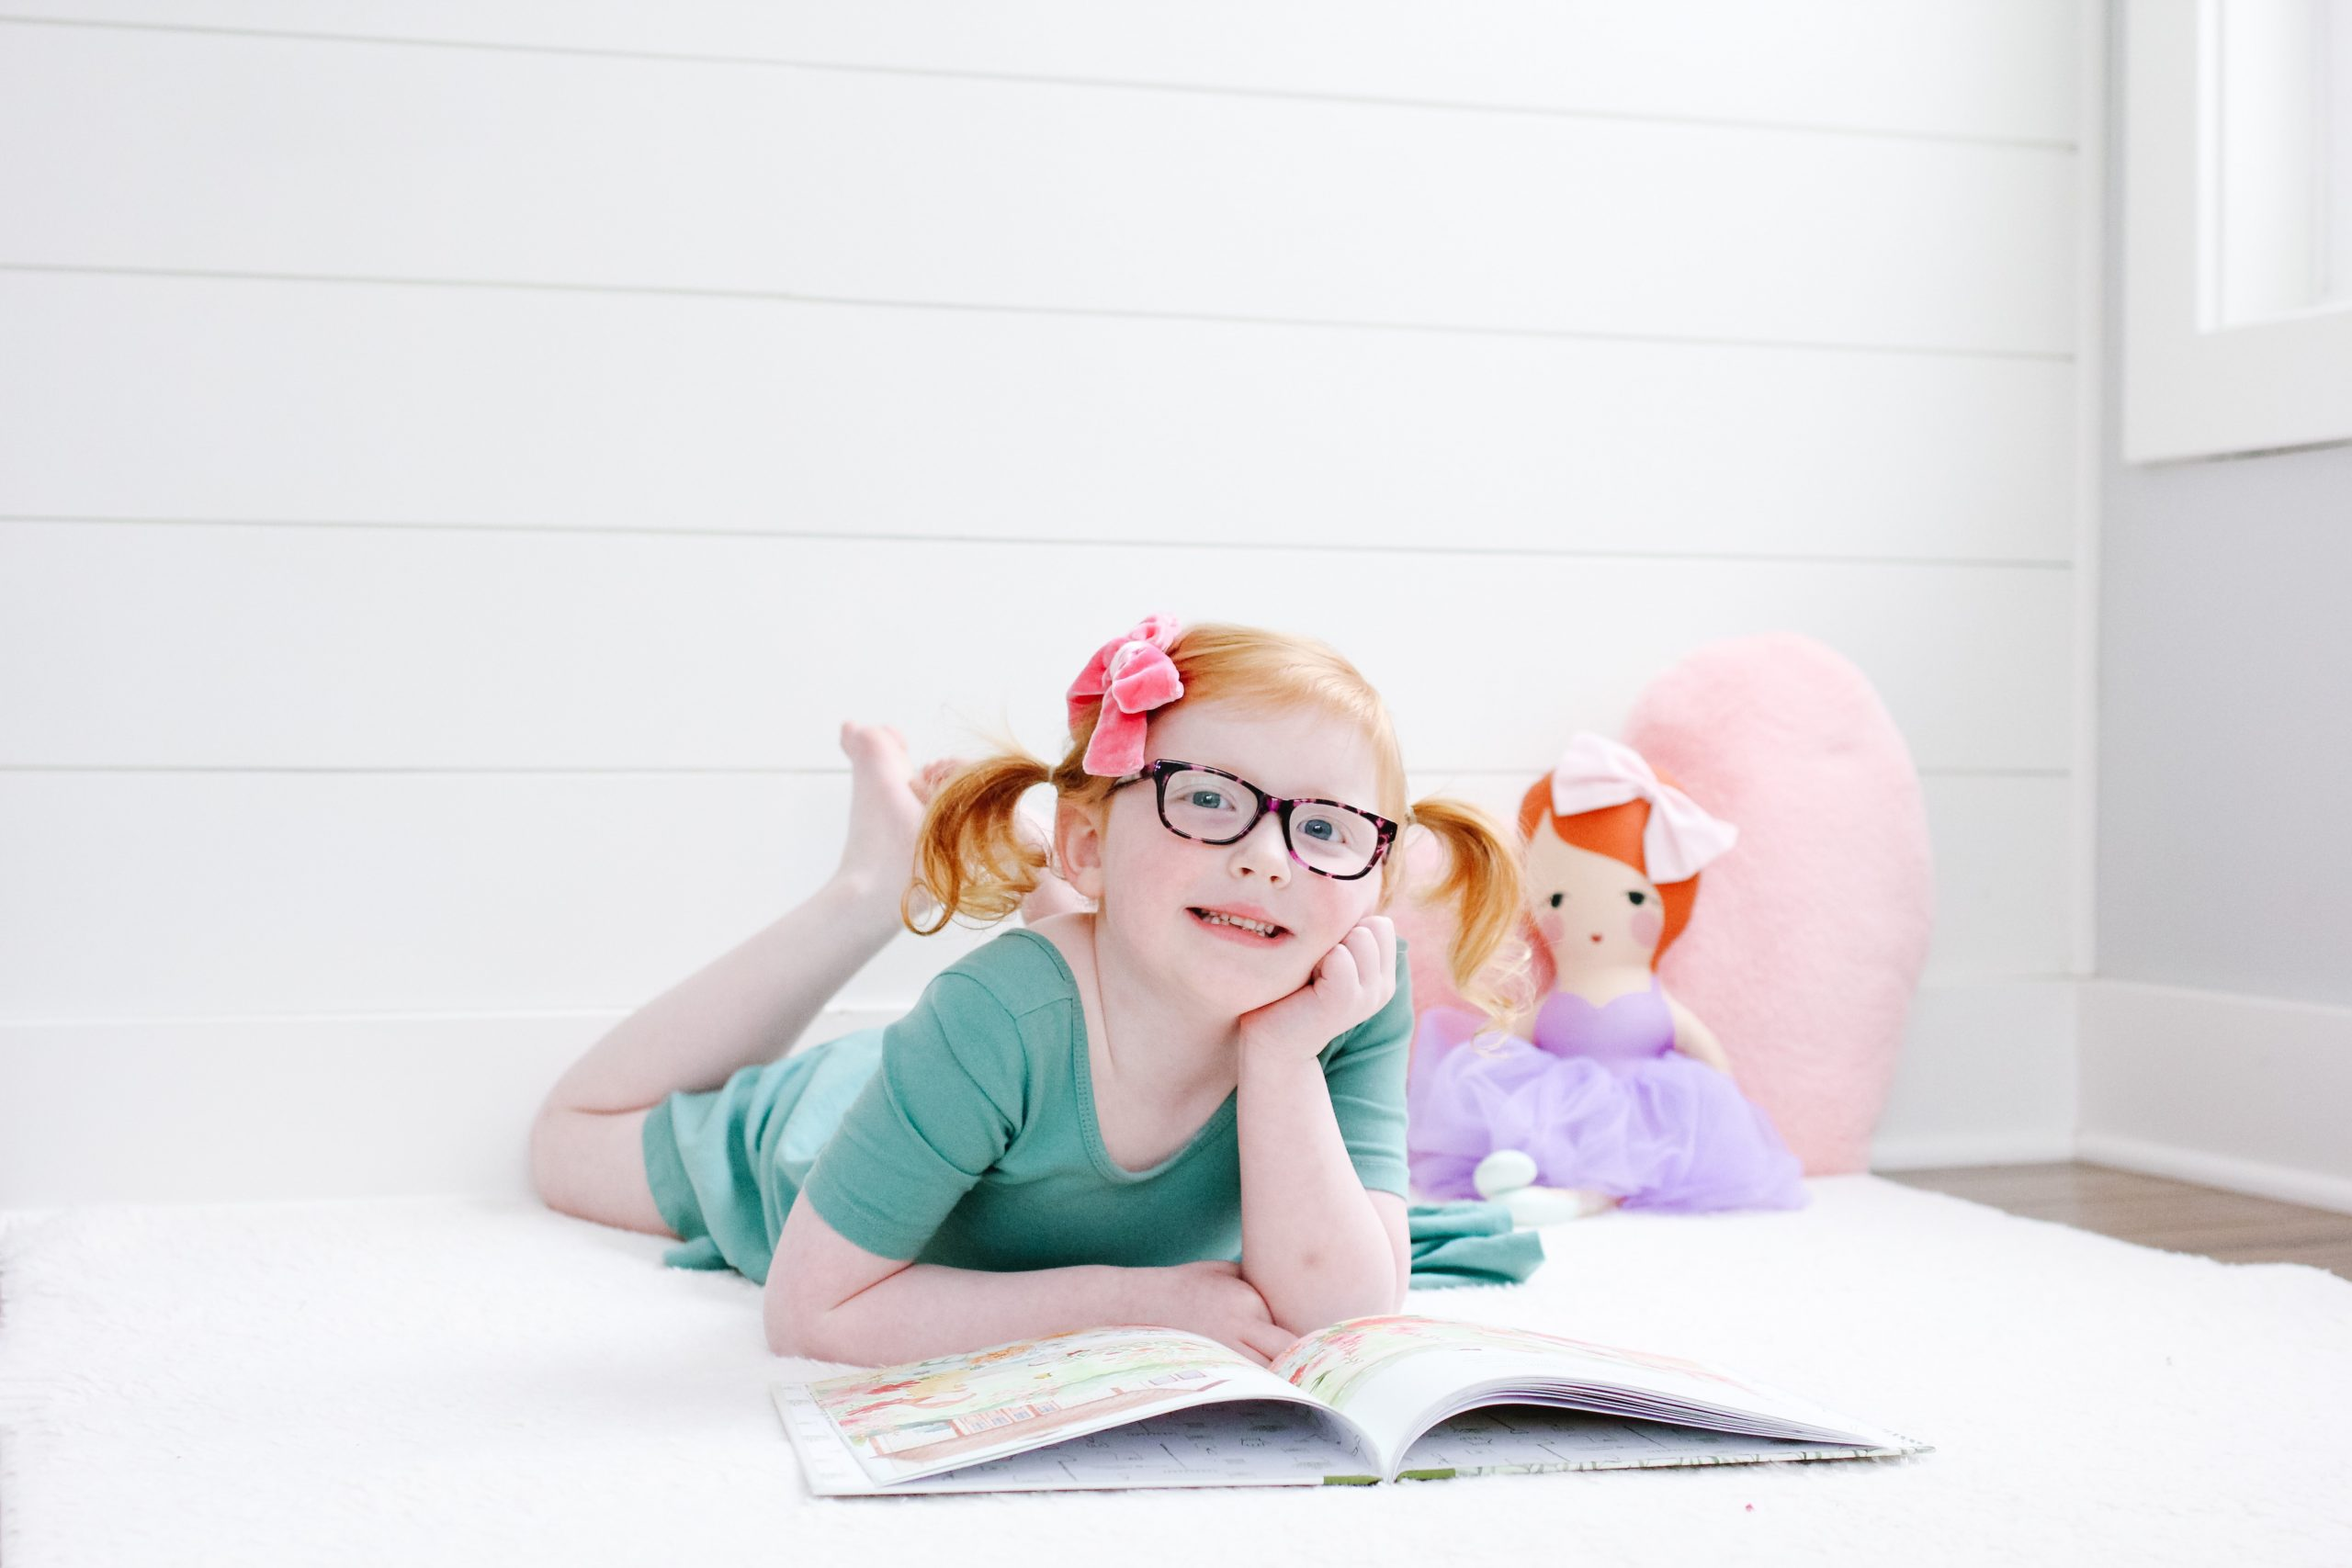 Tips to Help Your Child Wear Their Glasses